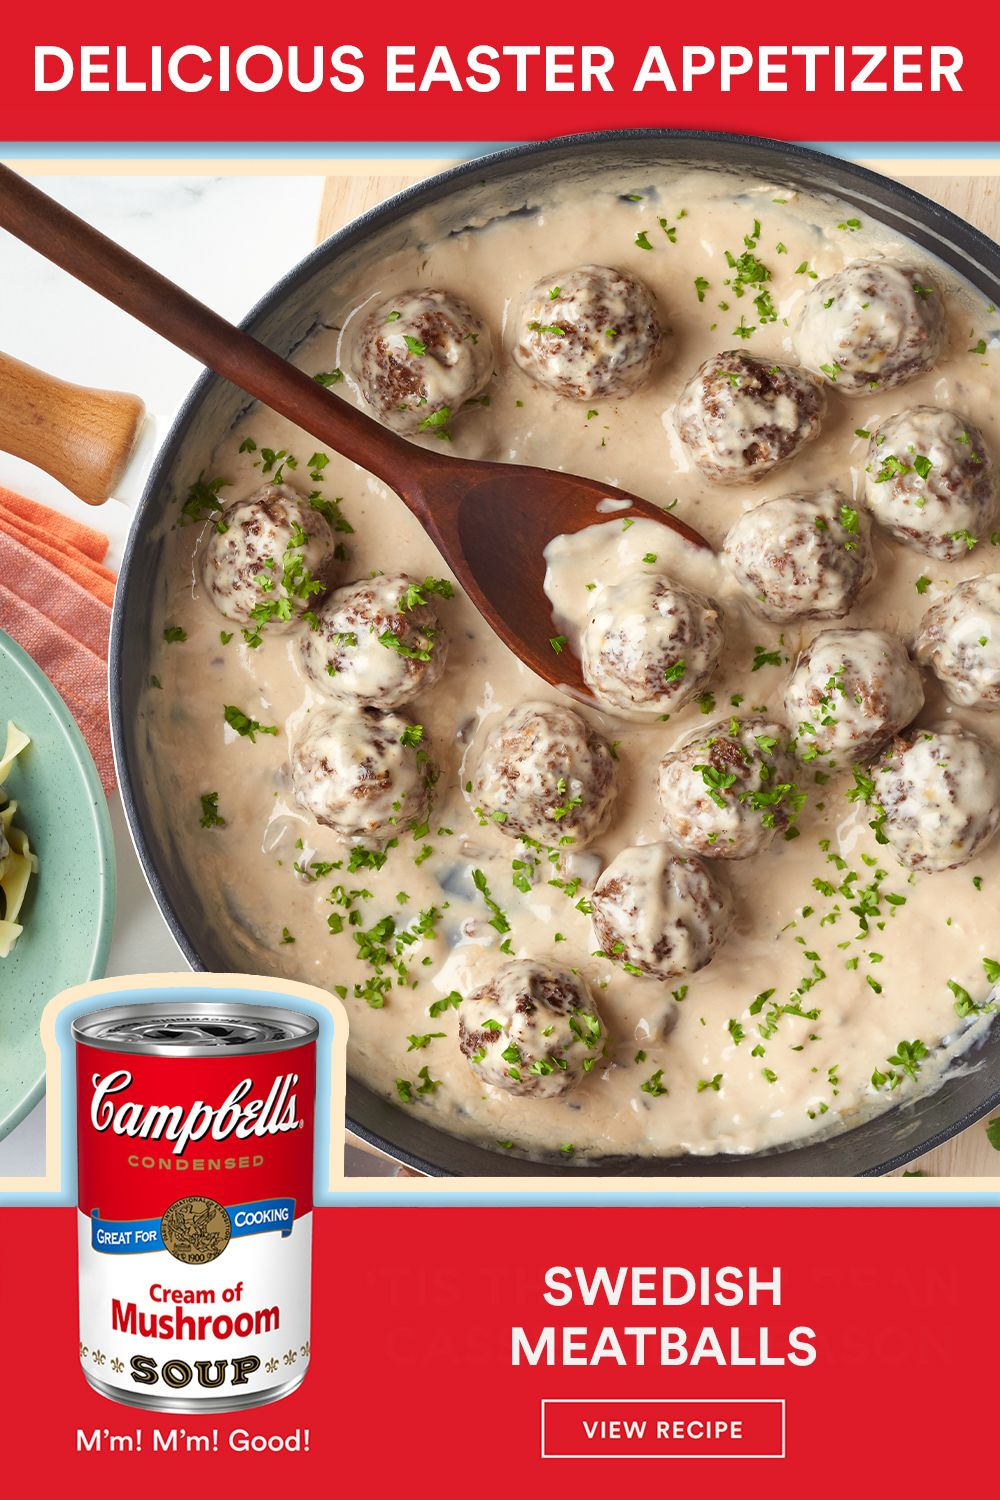 Delicious Easter Appetizer Swedish Meatballs In 2020 Recipes Food Cooking Recipes